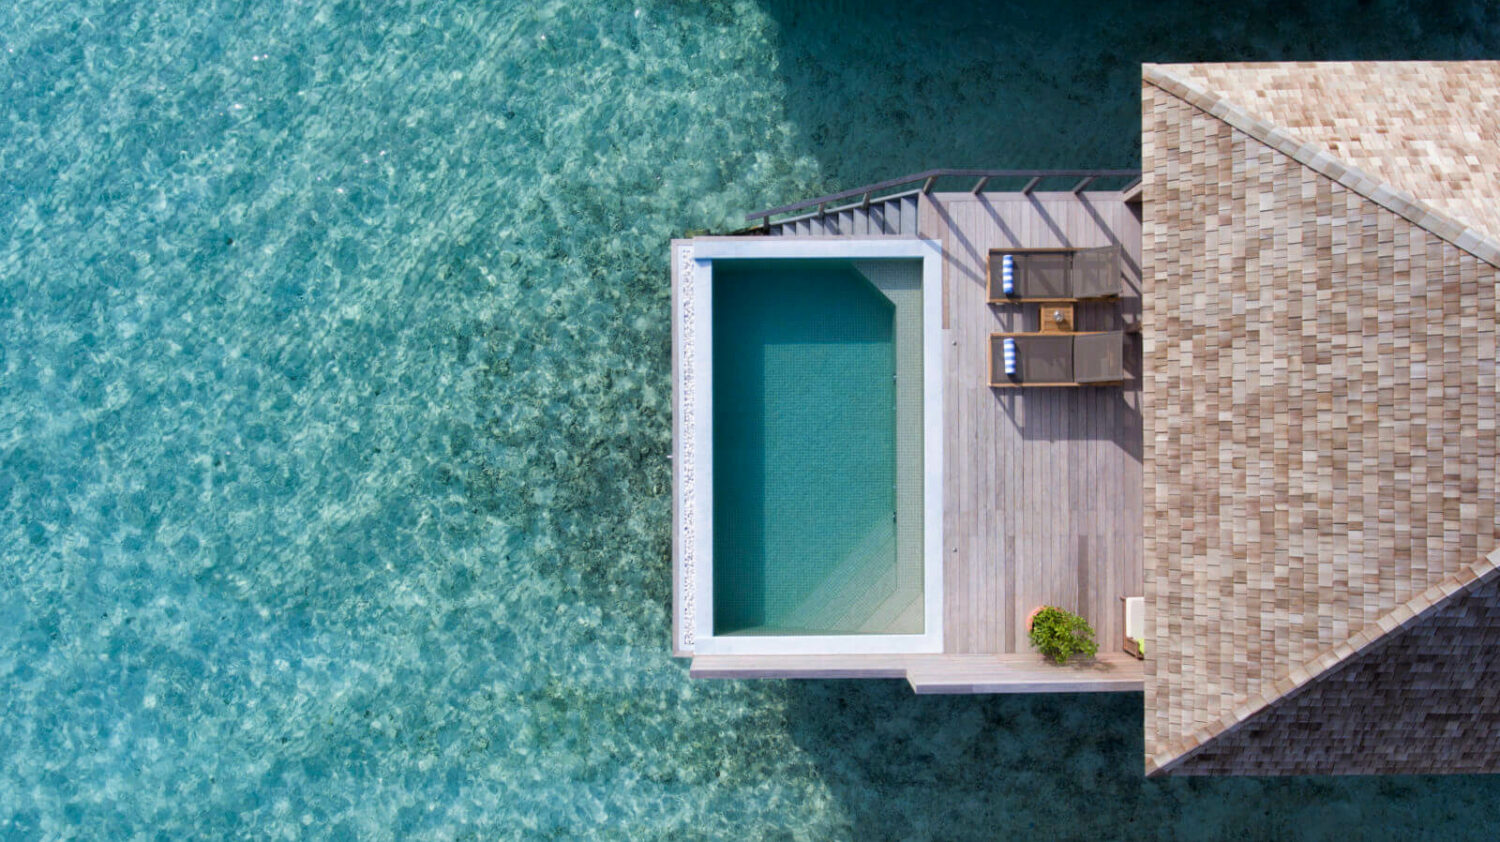 overwater villa with pool-hurawalhi island resort maldives